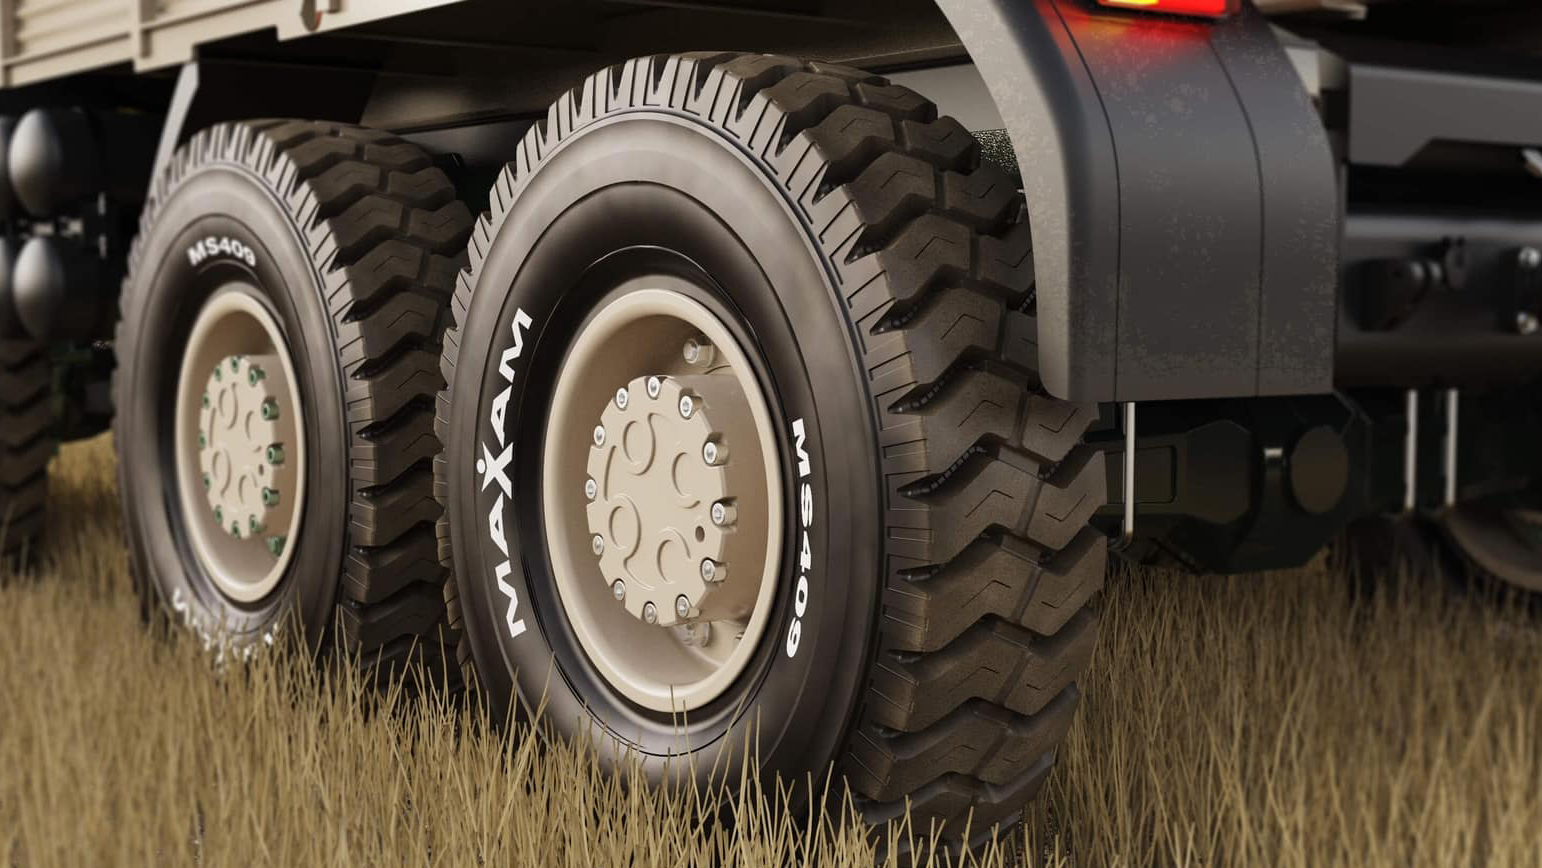 Maxam Tires Render in-context on grass